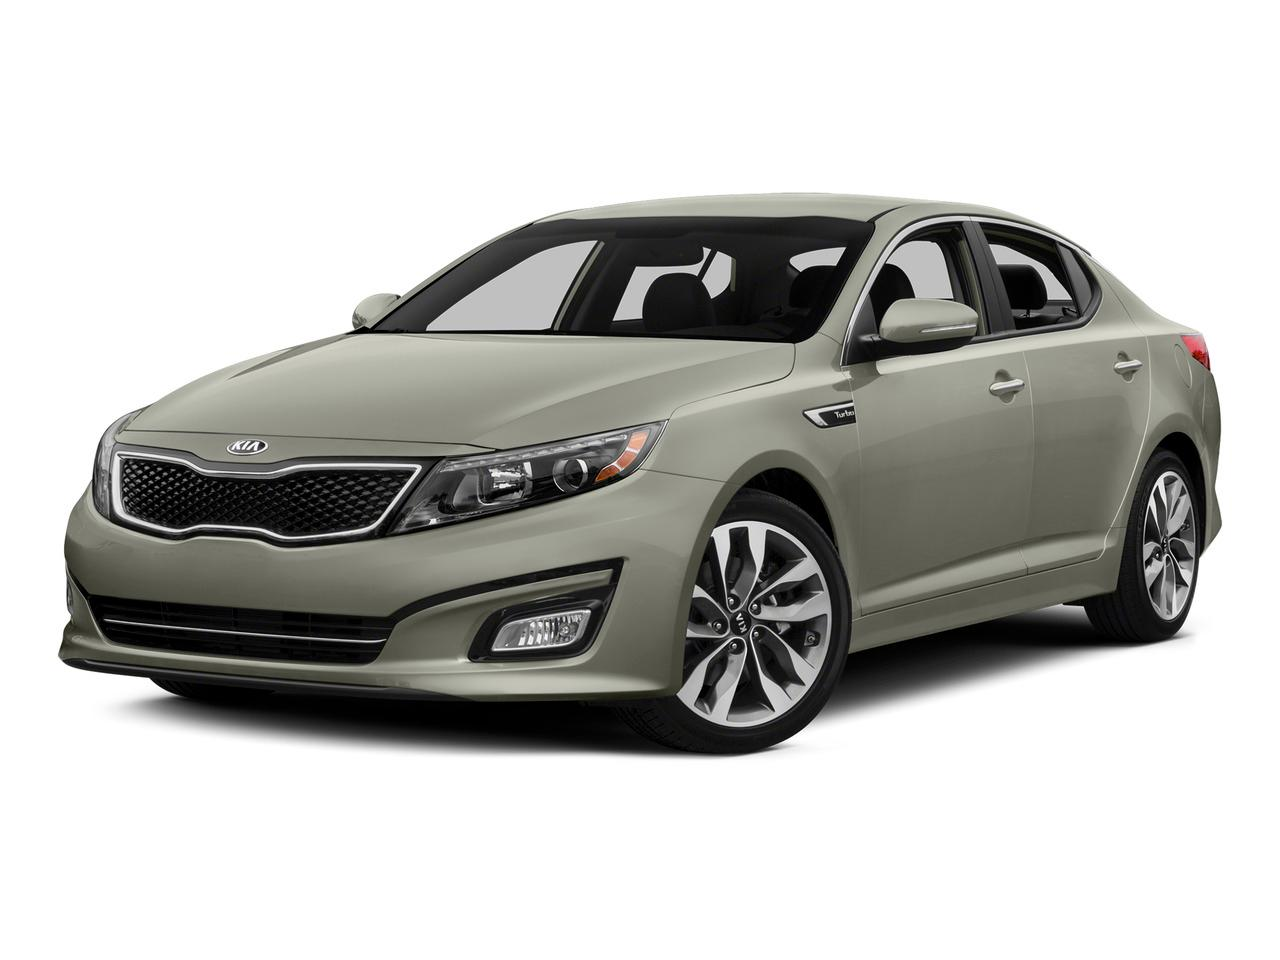 2015 Kia Optima Vehicle Photo in Odessa, TX 79762